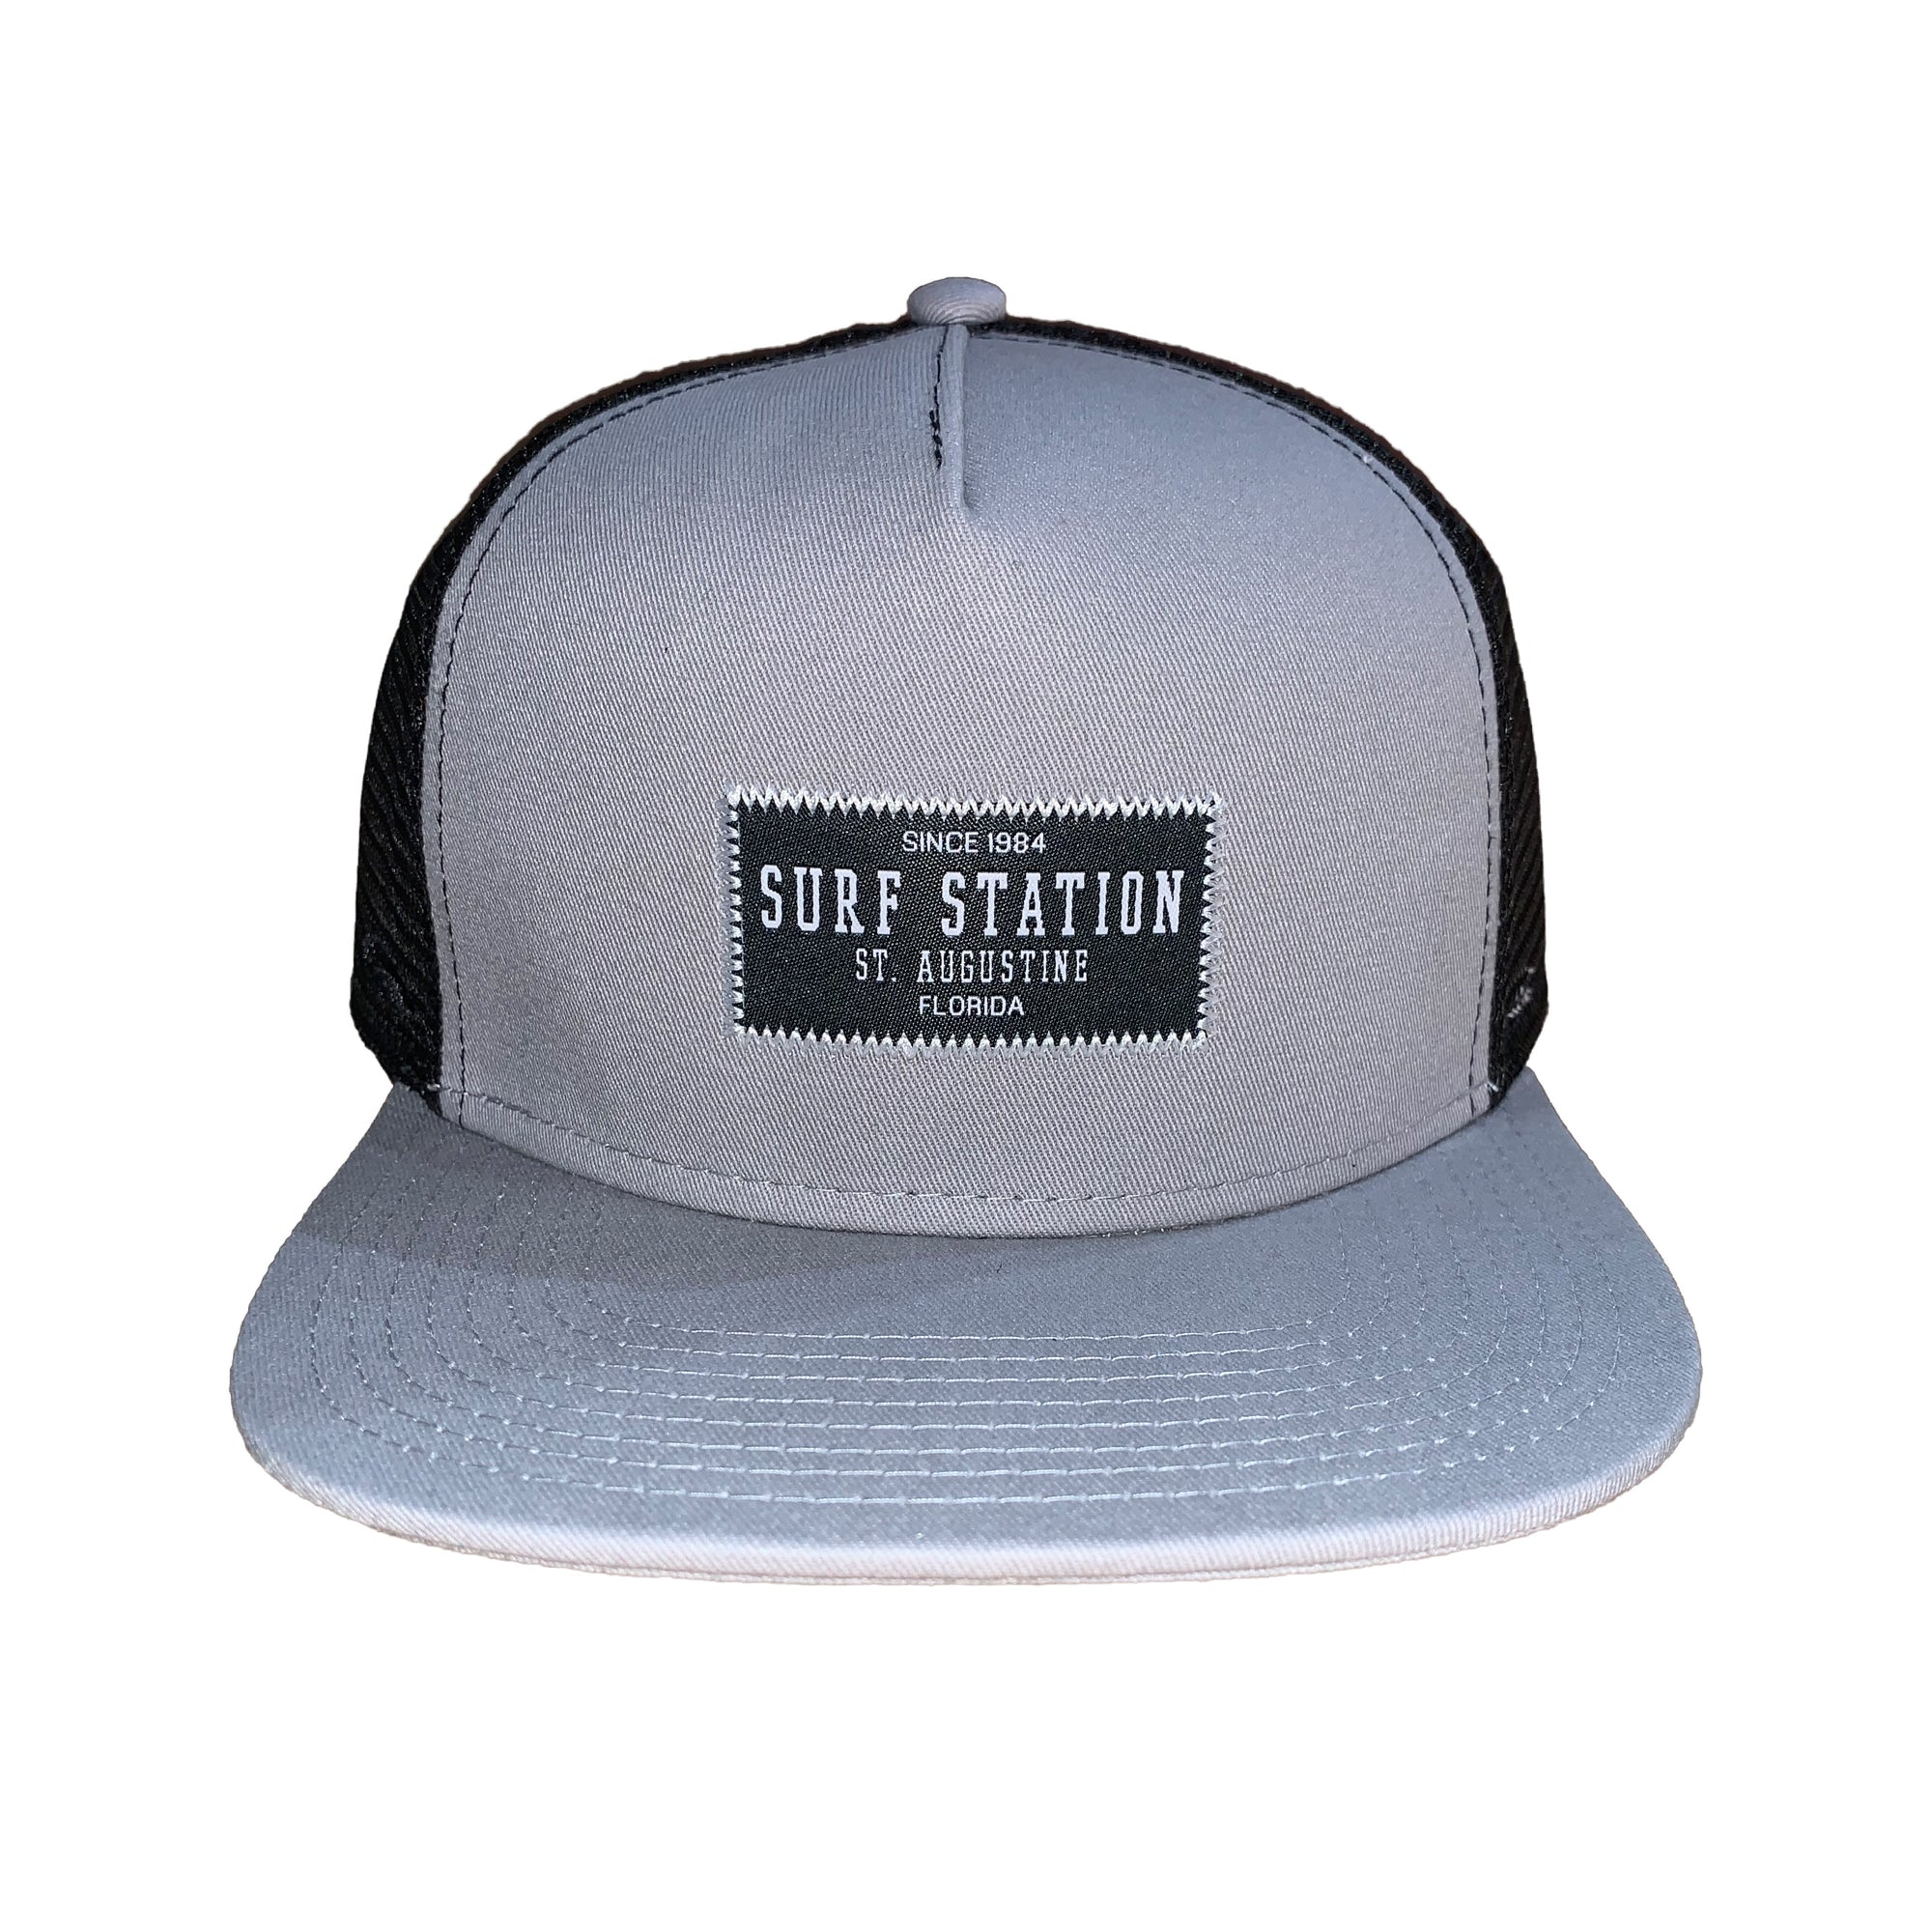 Surf Station Stitch Patch Men's Snapback Hat